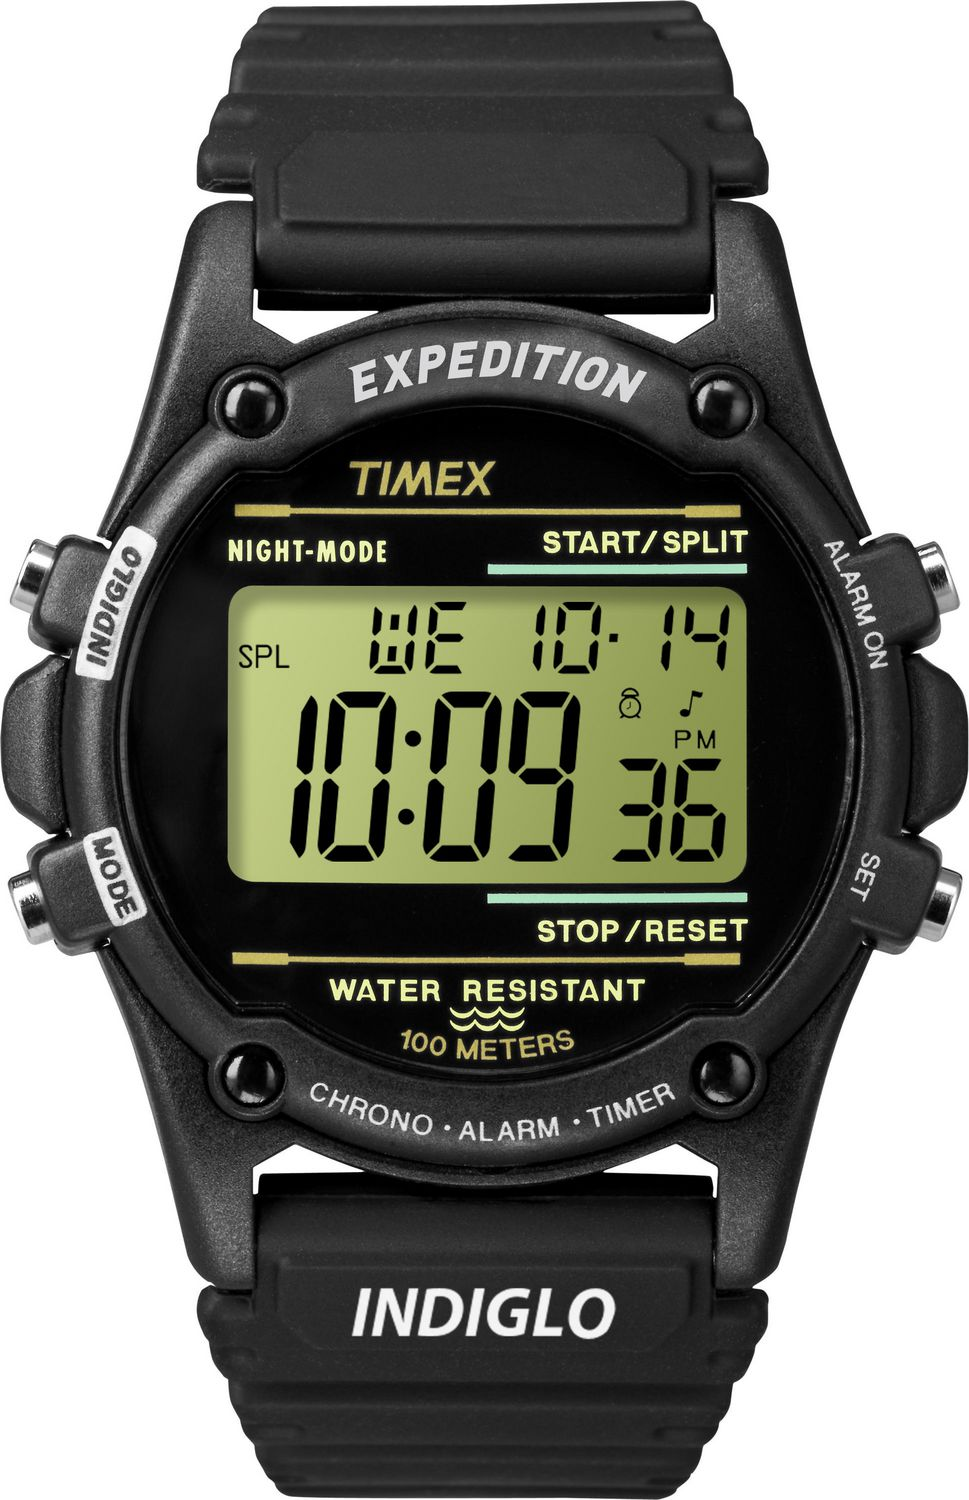 Men's Timex Indiglo Expedition Trail Mate Alarm ... |Timex Expedition Digital Watches Men